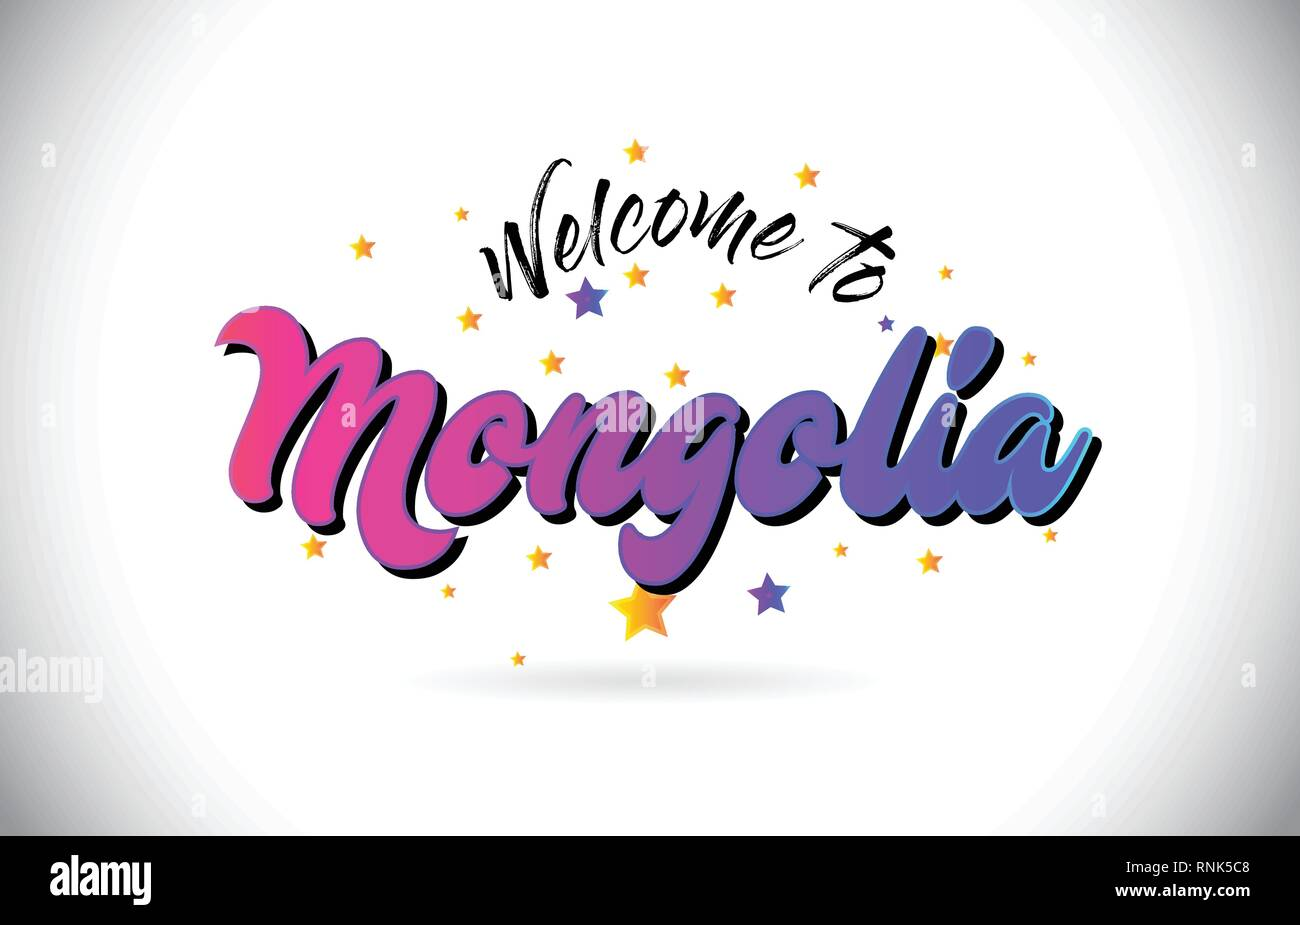 Mongolia Welcome To Word Text with Purple Pink Handwritten Font and Yellow Stars Shape Design Vector Illusration. - Stock Vector